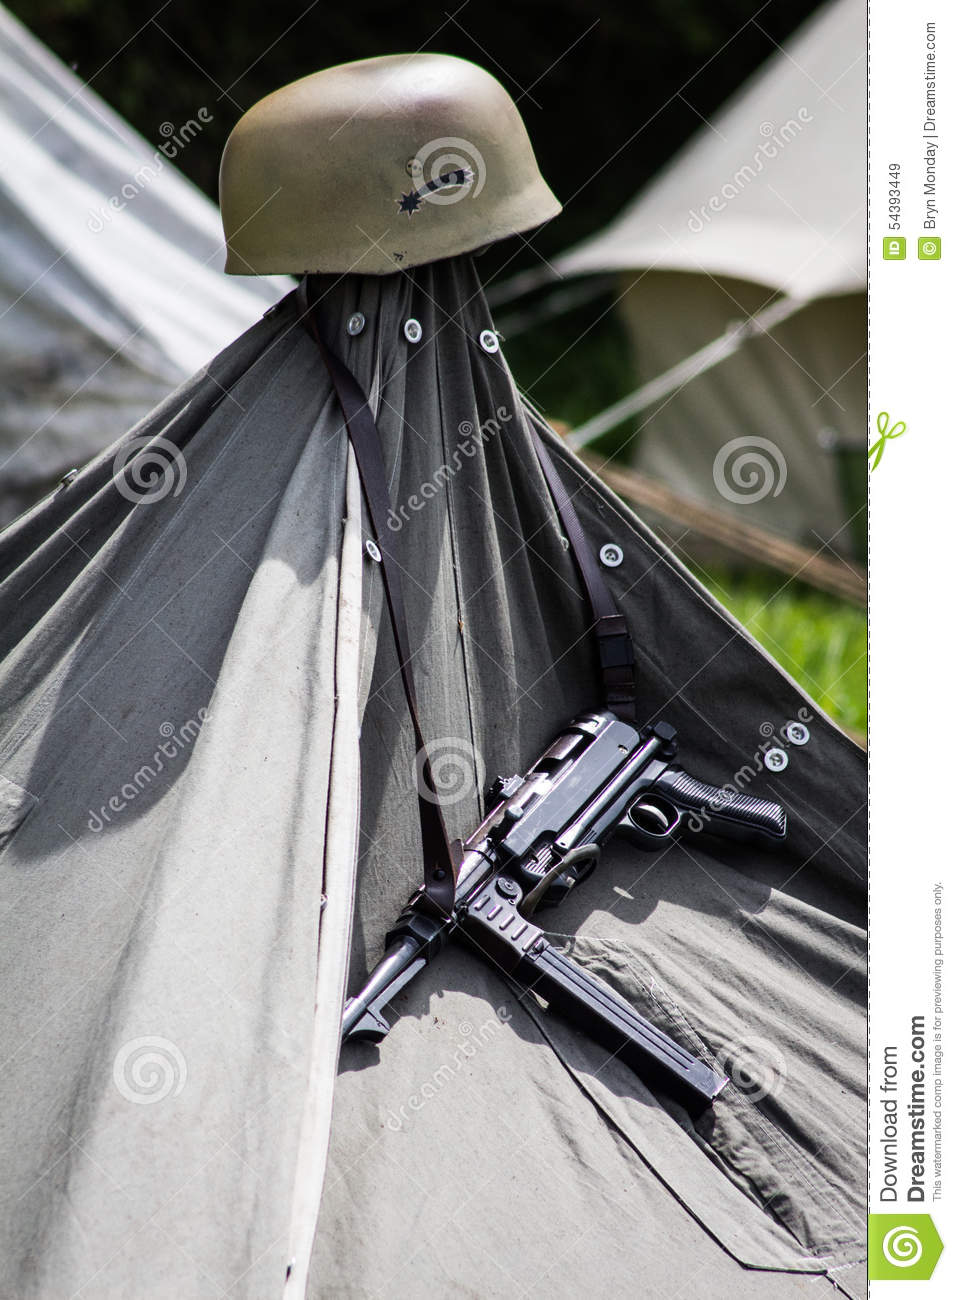 MP 40 and Helmet Hanging on a Tent